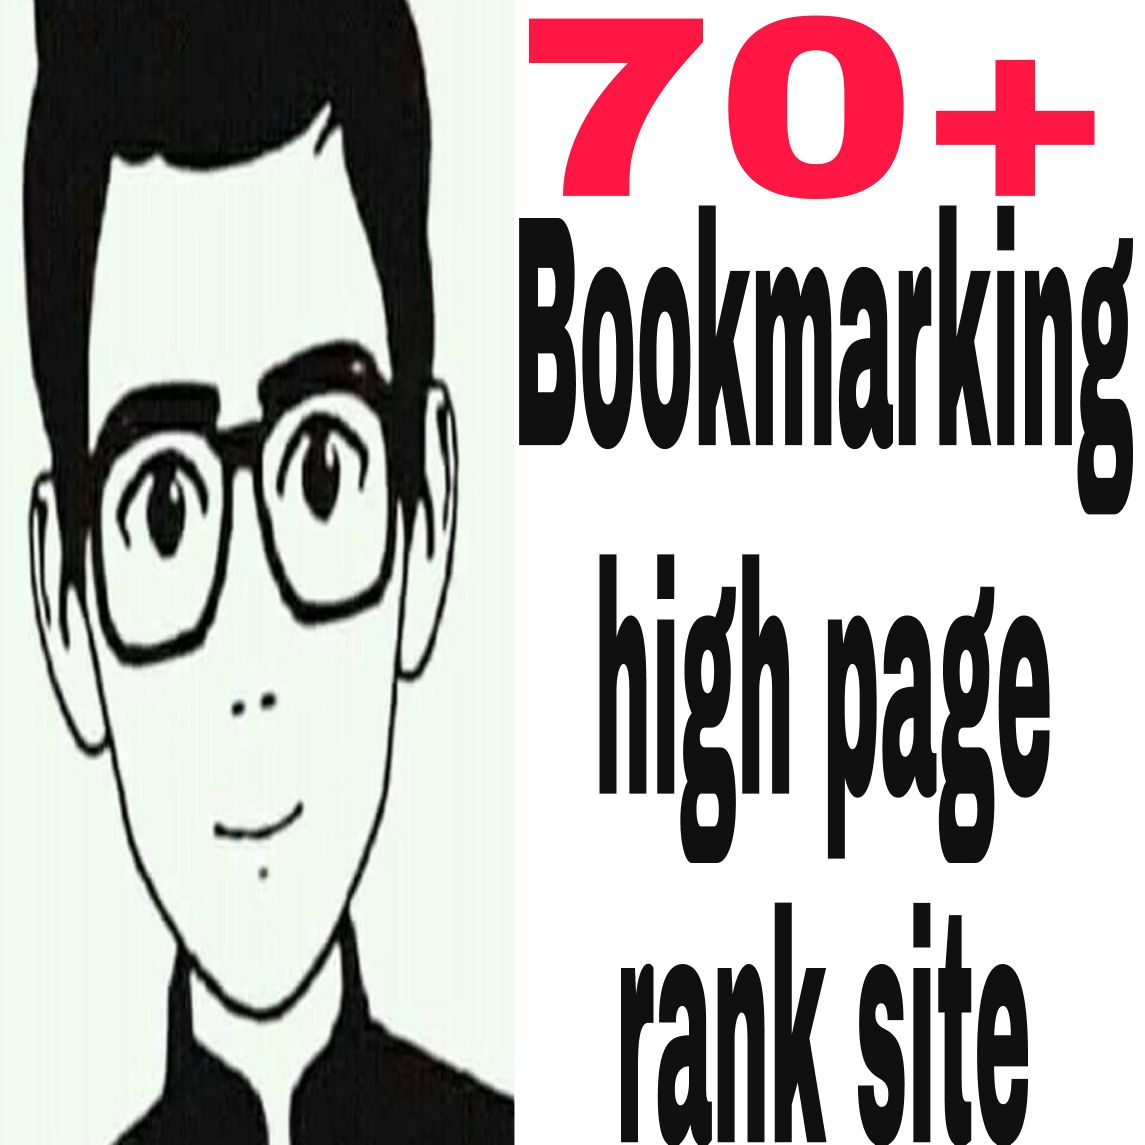 i will completed 70 social bookmarking from high page rank site